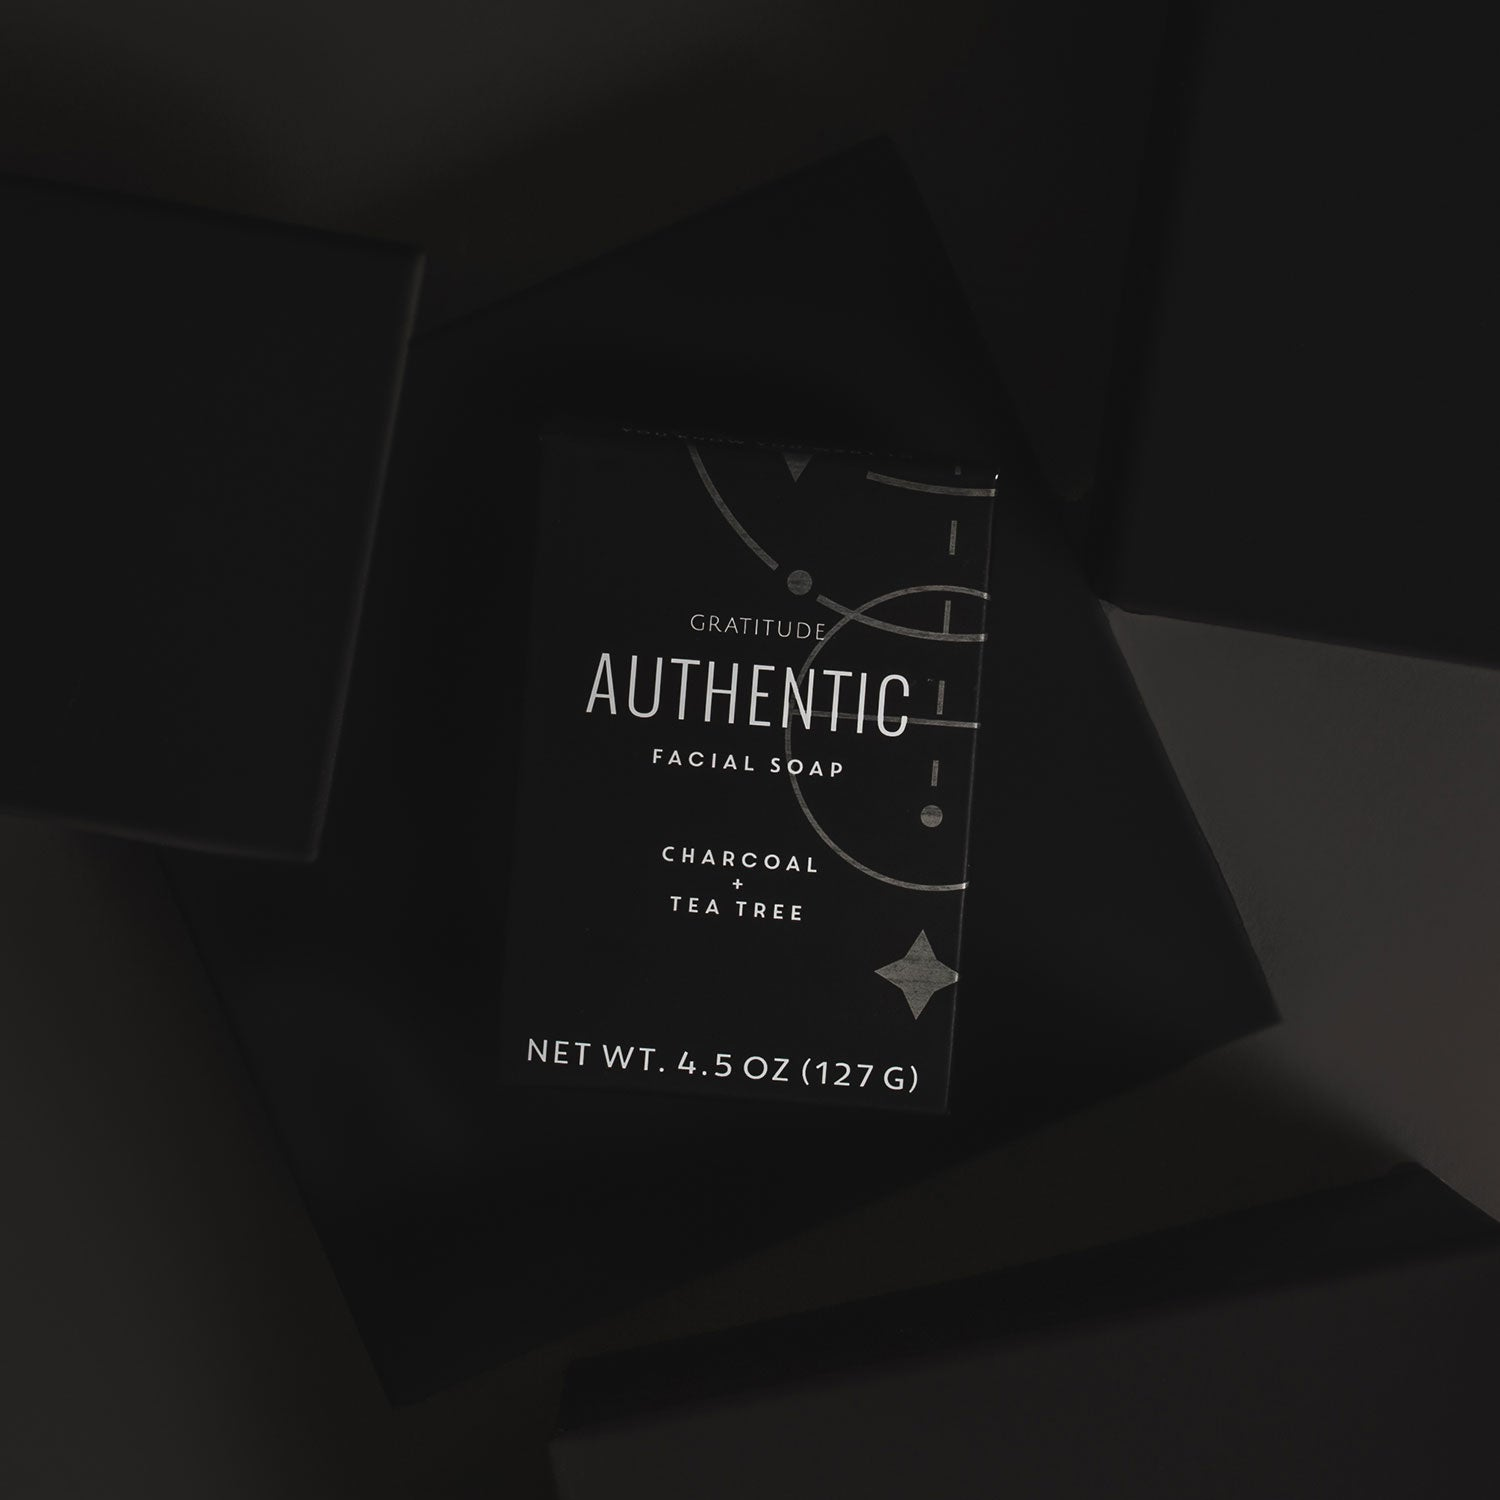 A box of Authentic soap on a black background